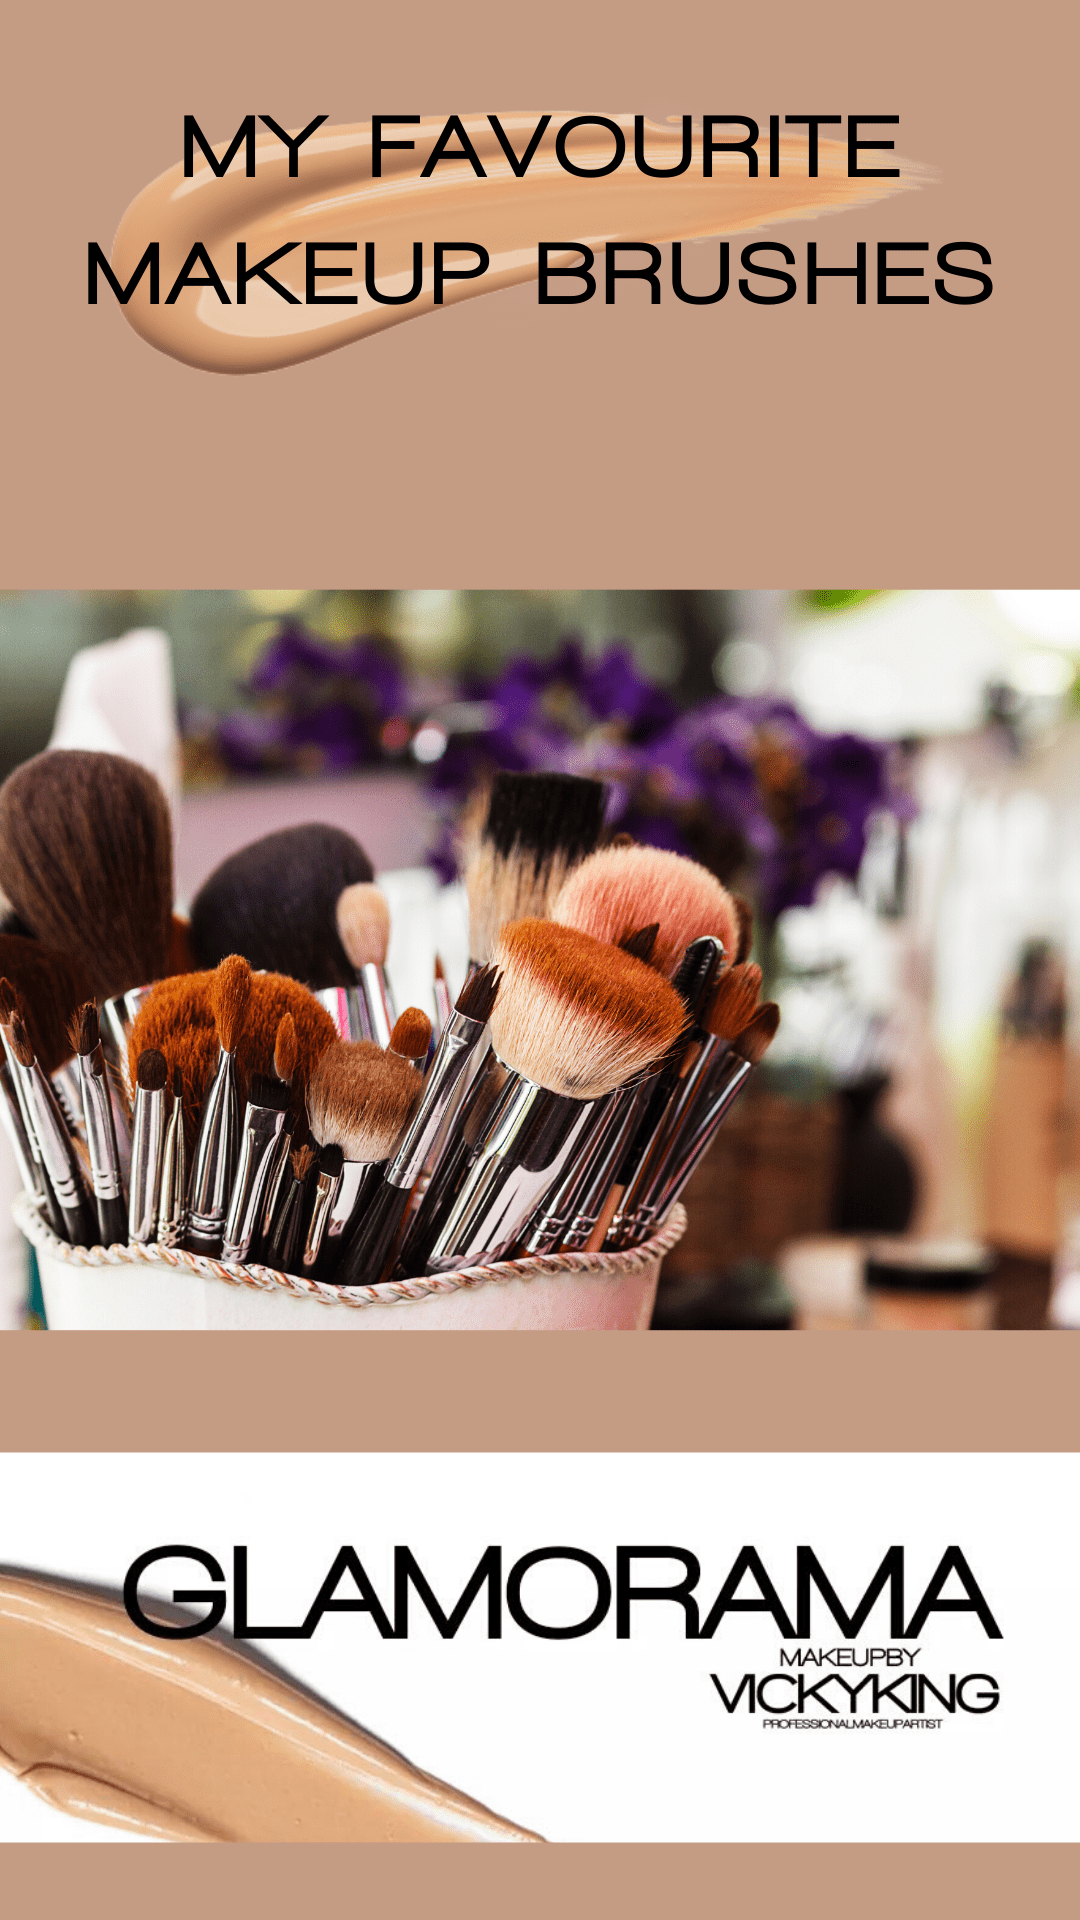 My favourite makeup brushes